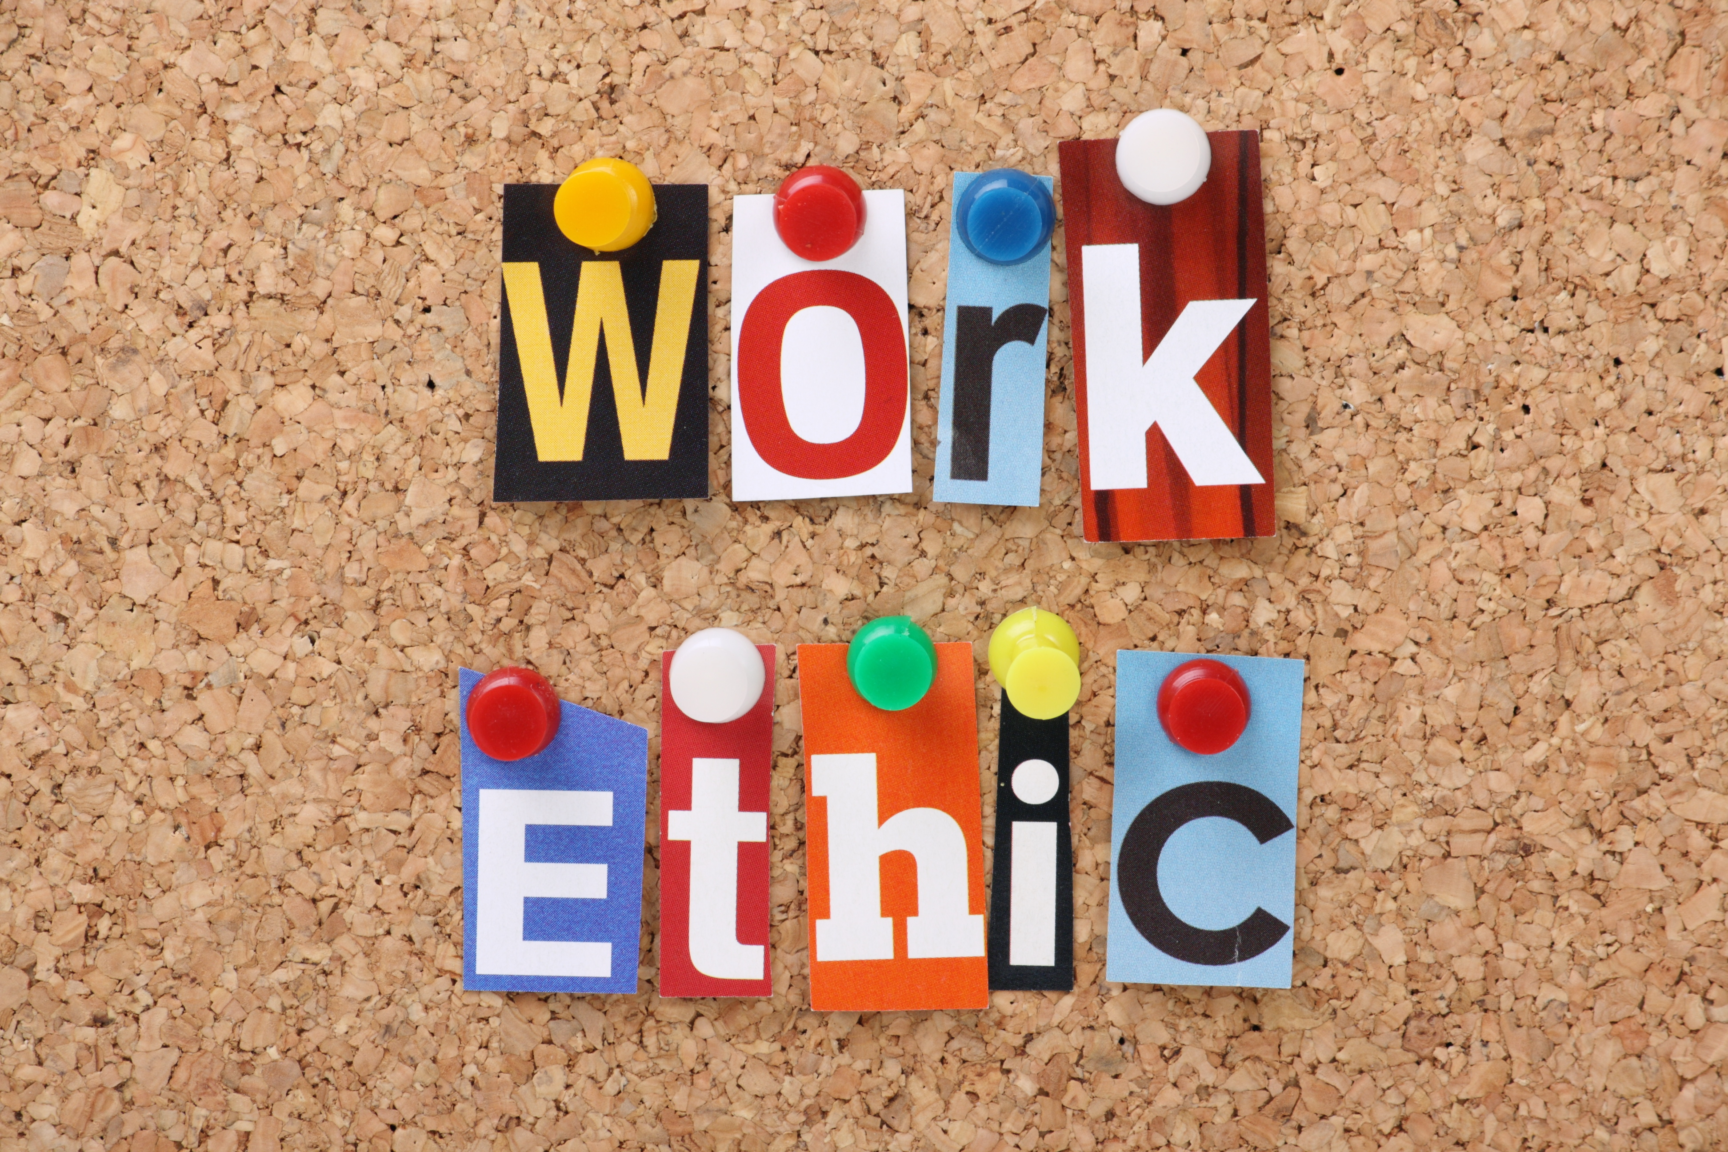 work ethics nigerians fail to observe